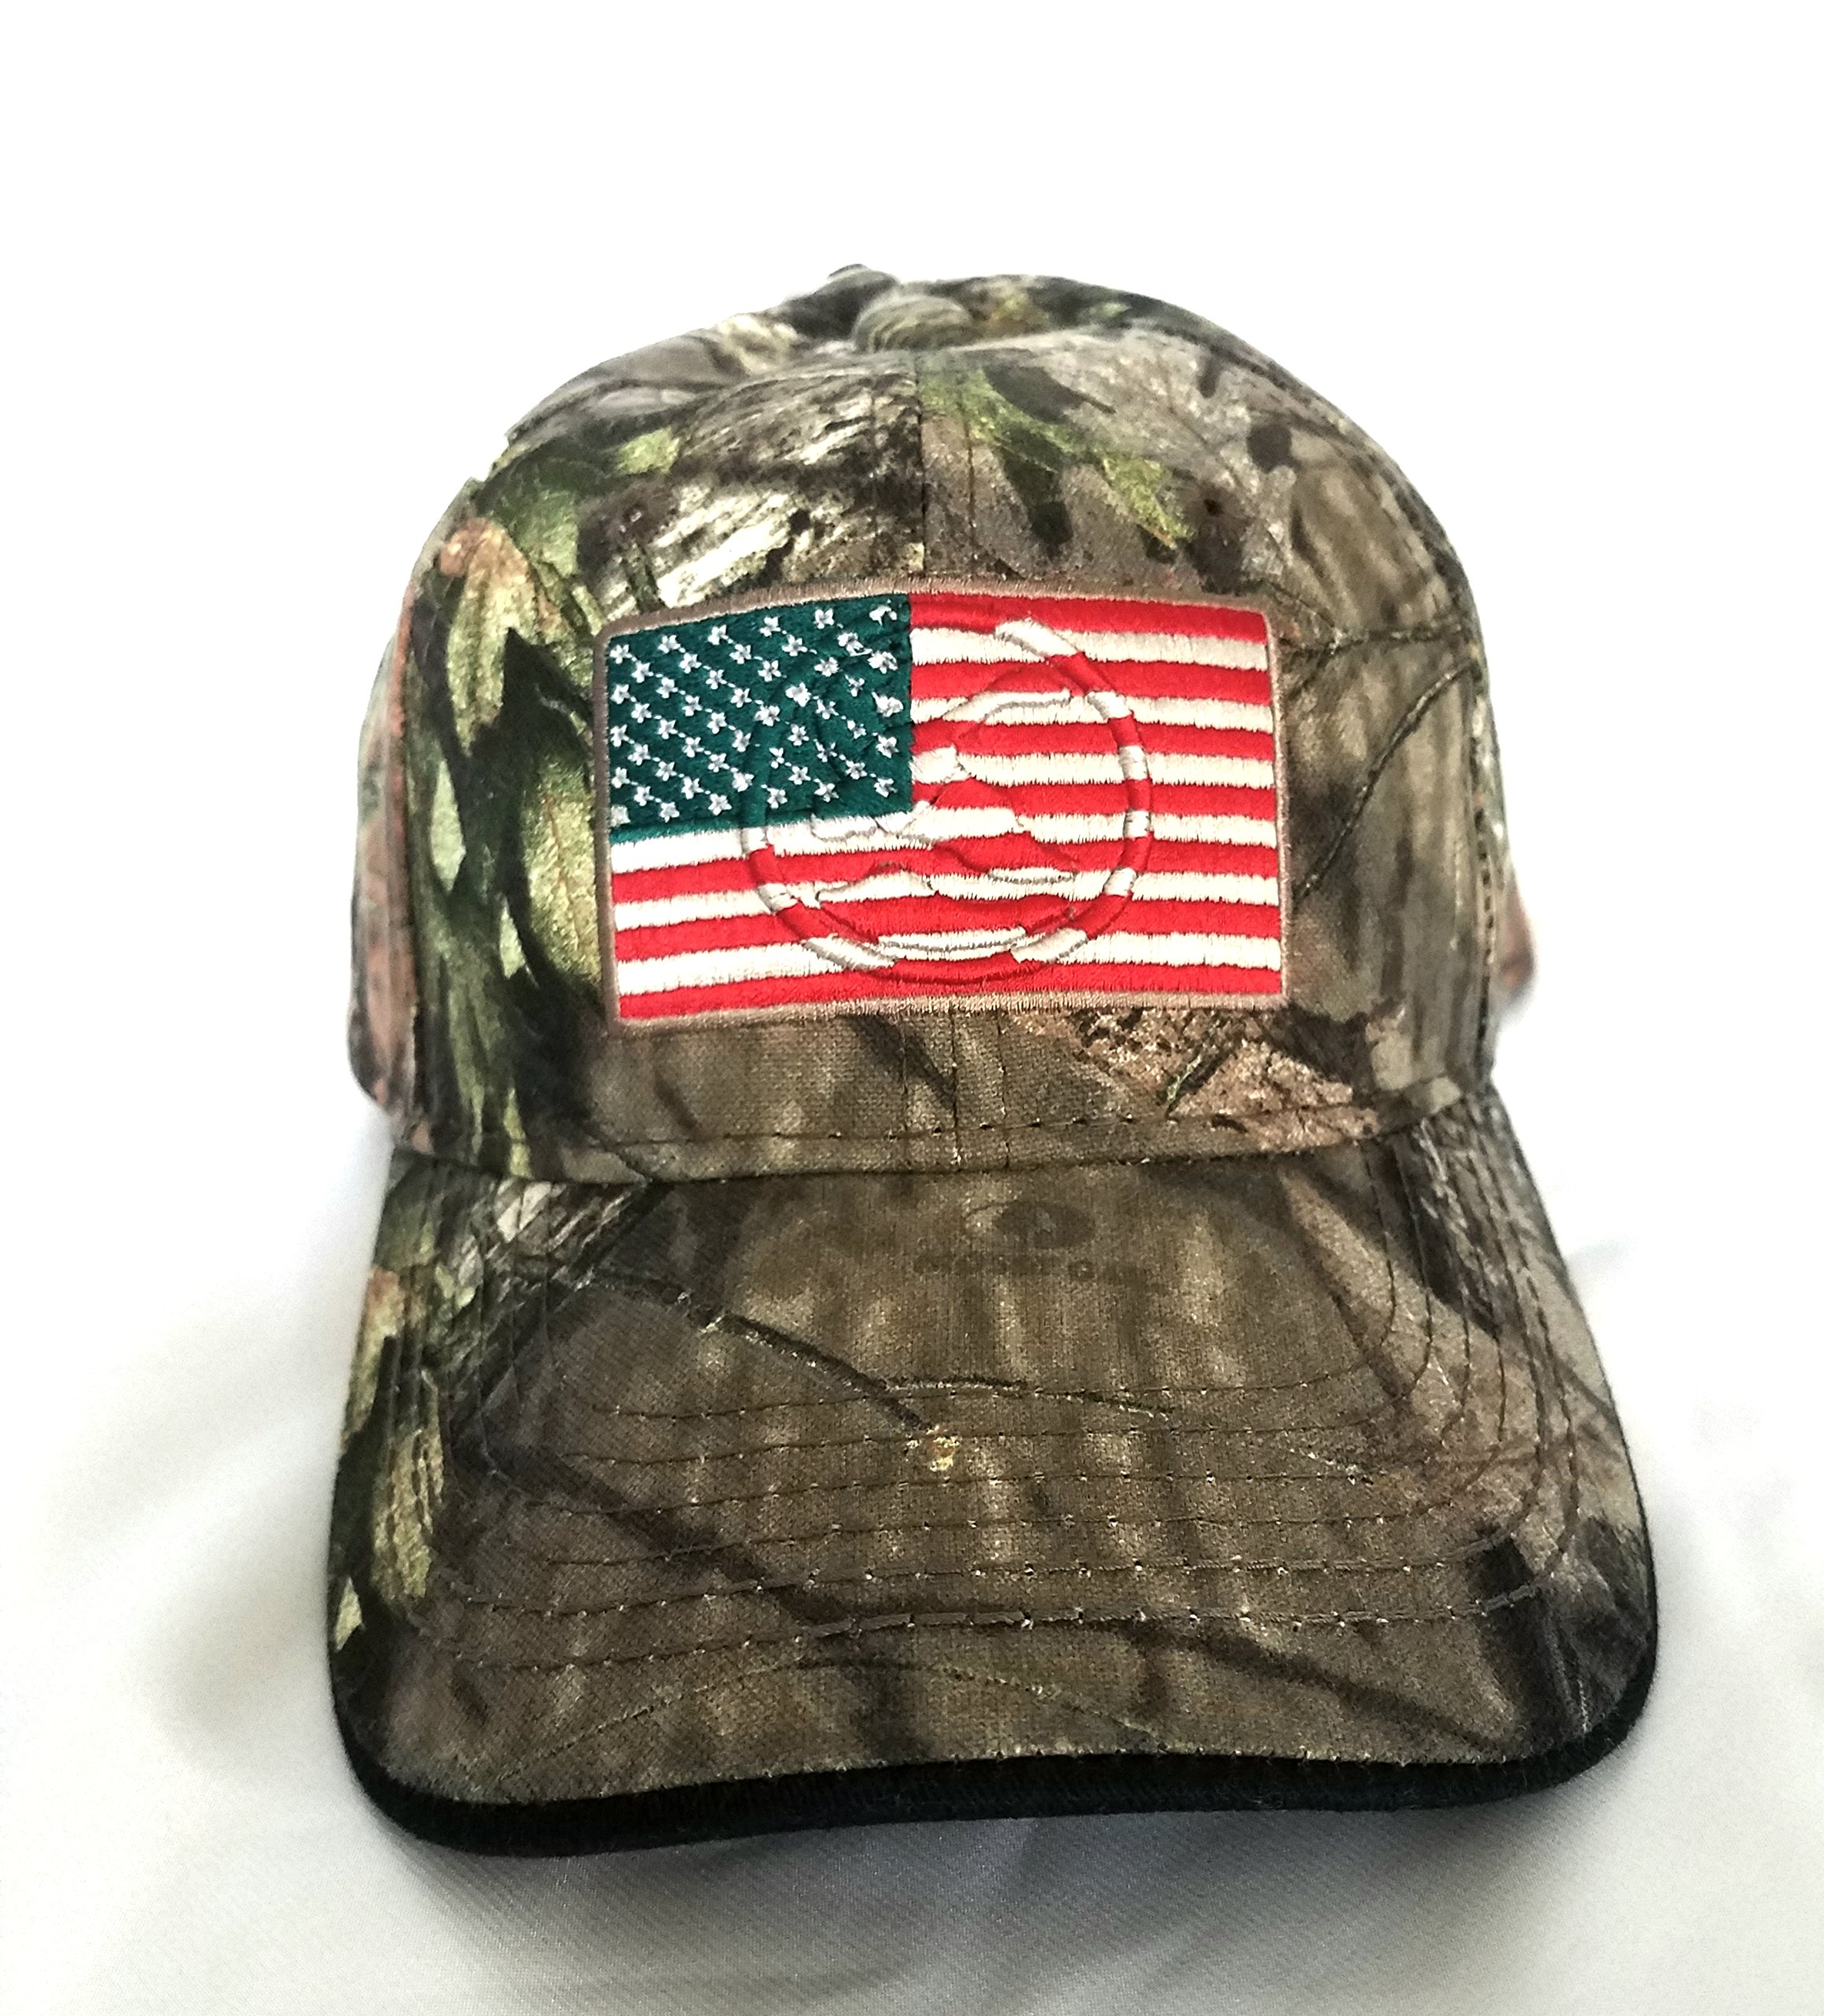 Mossy Oak Camping, Hunting, Outdoors American Flag Camo Cap, Army Military Camo Cap Baseball, Camouflage Hat by Mossy Oak (Image #2)